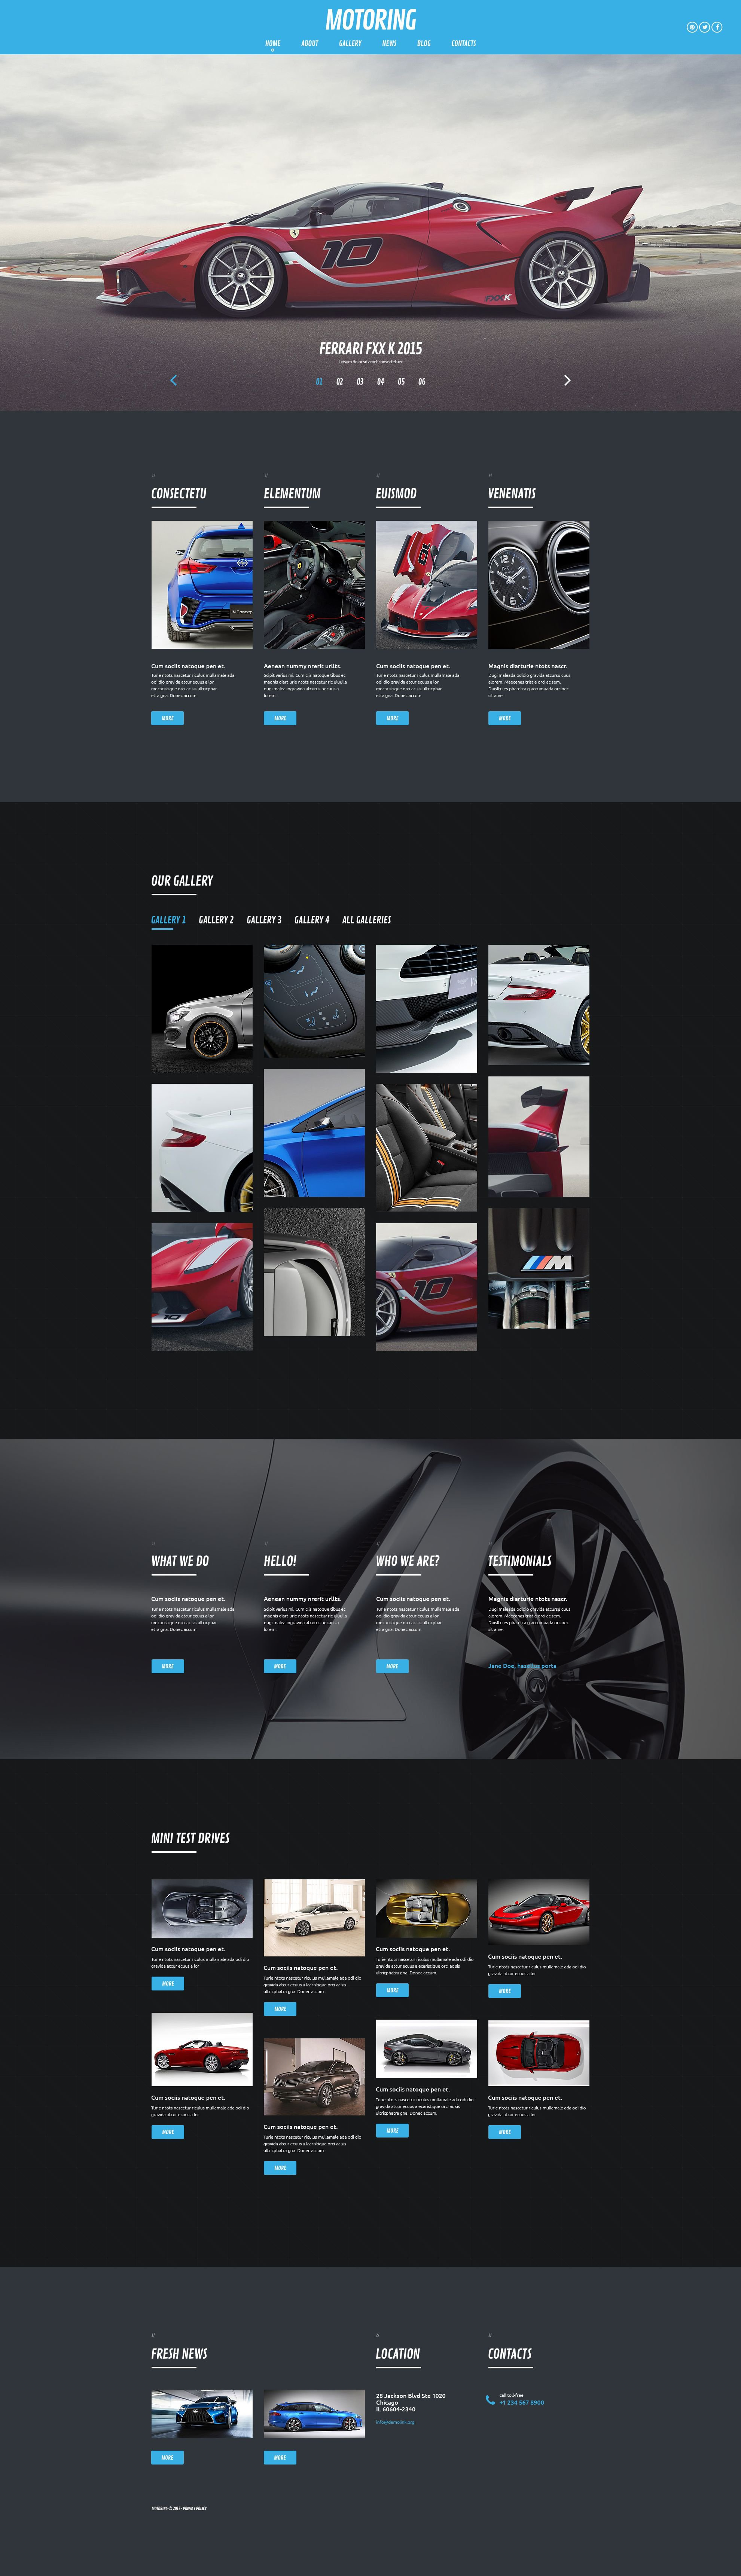 The Motor Cars WordPress Design 53882, one of the best WordPress themes of its kind (cars, most popular), also known as motor cars WordPress template, magazine WordPress template, motors WordPress template, news WordPress template, car WordPress template, auto WordPress template, drive WordPress template, driving WordPress template, race WordPress template, championship WordPress template, community WordPress template, pilots WordPress template, track WordPress template, road WordPress template, show WordPress template, victory WordPress template, rally WordPress template, driver WordPress template, Citroen Peugeot Ford Subaru Mitsubishi Skoda rodeo WordPress template, roundup WordPress template, tournament WordPress template, new WordPress template, model WordPress template, style WordPress template, safety WordPress template, improvement WordPress template, exhibition WordPress template, motor WordPress template, speed WordPress template, warranty and related with motor cars, magazine, motors, news, car, auto, drive, driving, race, championship, community, pilots, track, road, show, victory, rally, driver, Citroen Peugeot Ford Subaru Mitsubishi Skoda rodeo, roundup, tournament, new, model, style, safety, improvement, exhibition, motor, speed, warranty, etc.